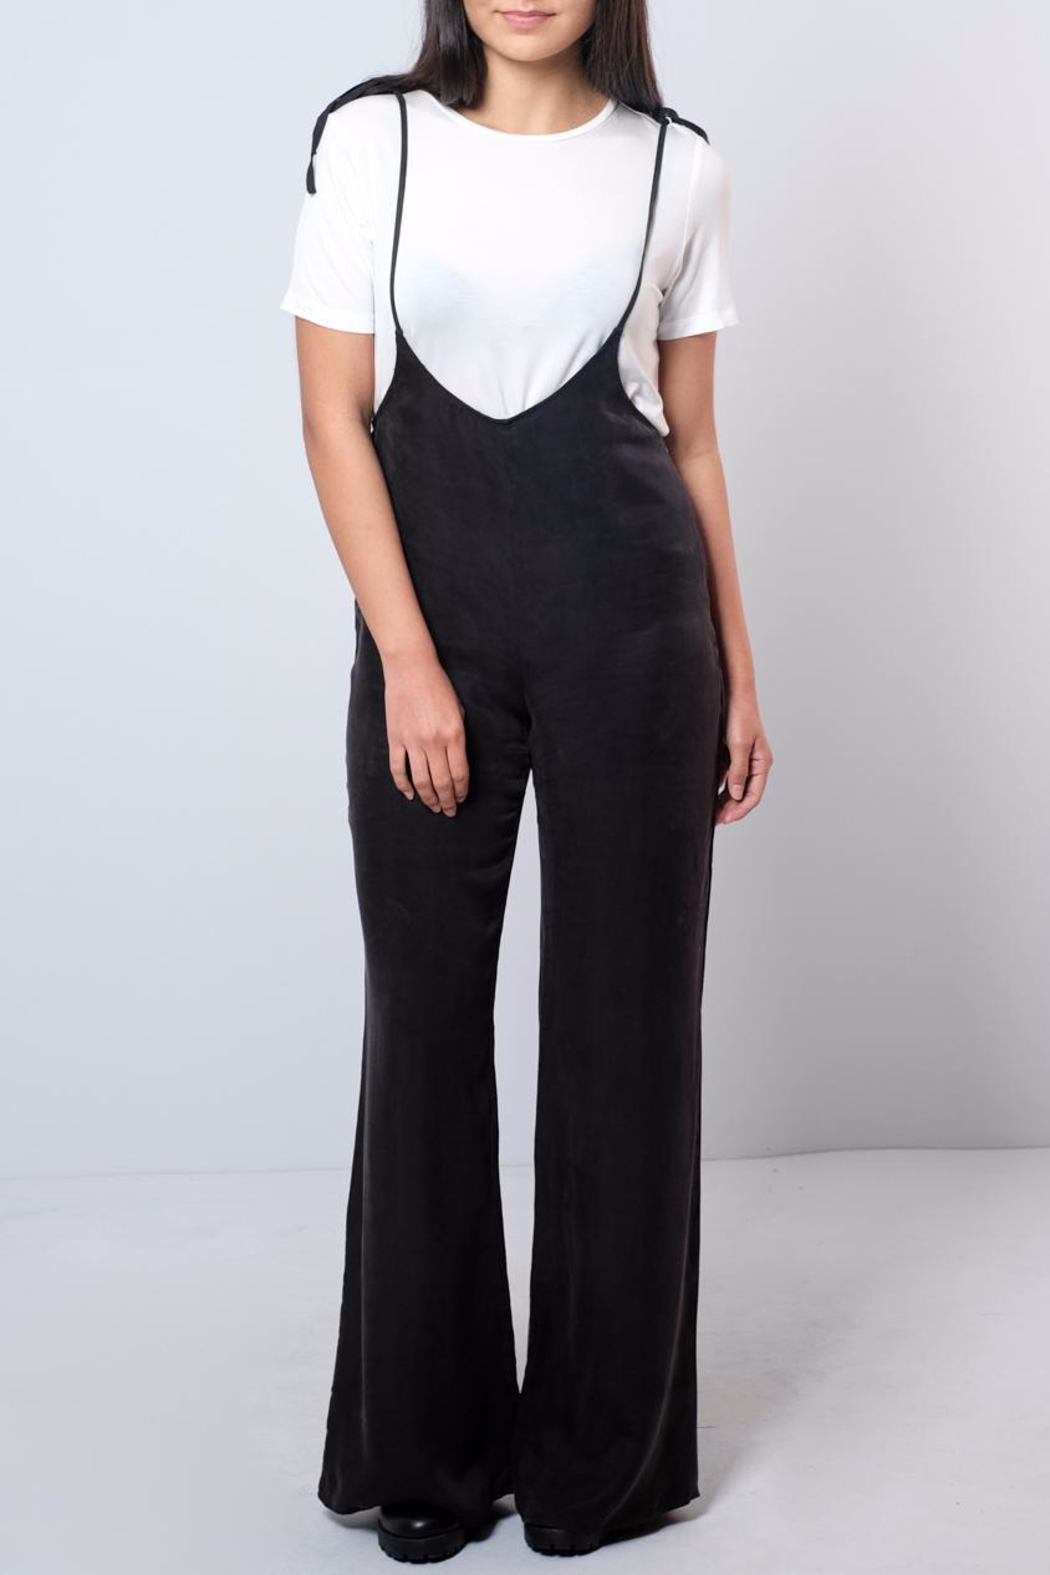 eb1934de6a06 Honey Punch Bell-Bottom Jumpsuit from Vancouver by 8th   Main ...